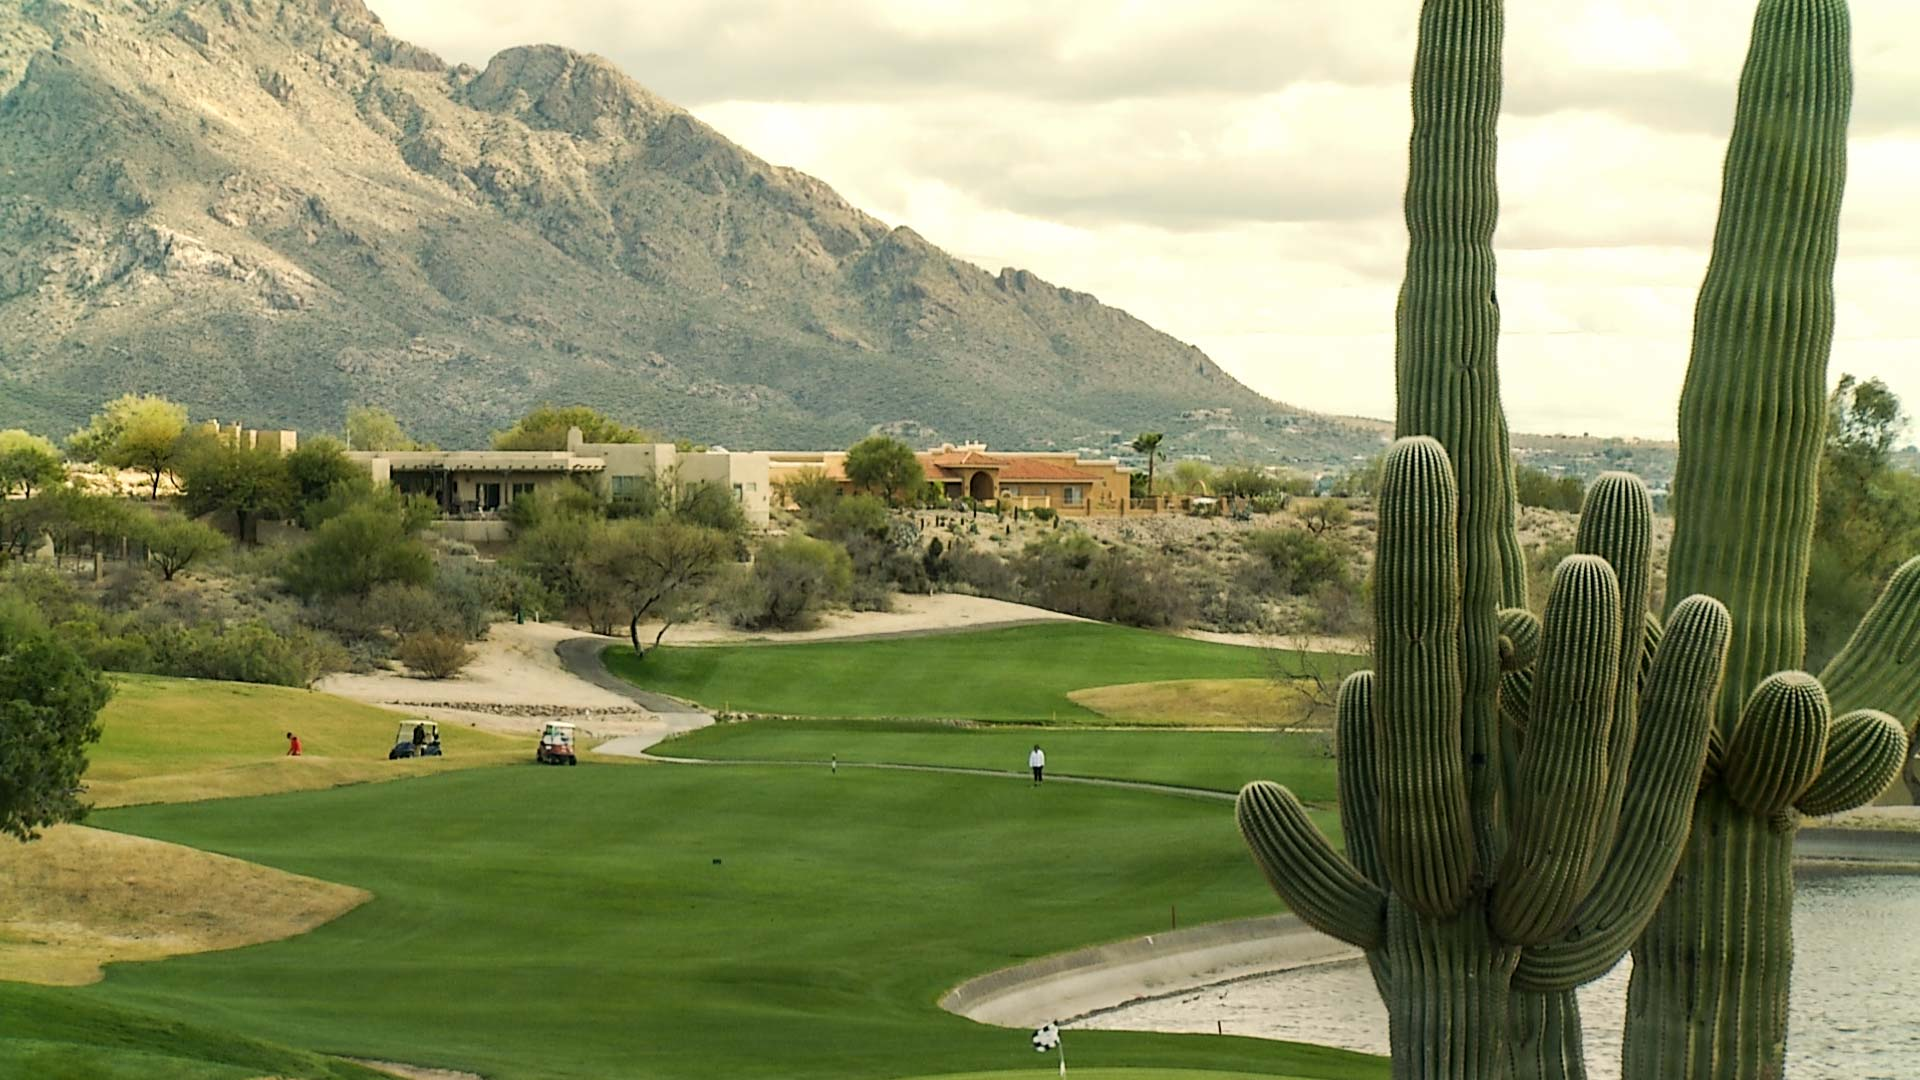 A golf course in Oro Valley.